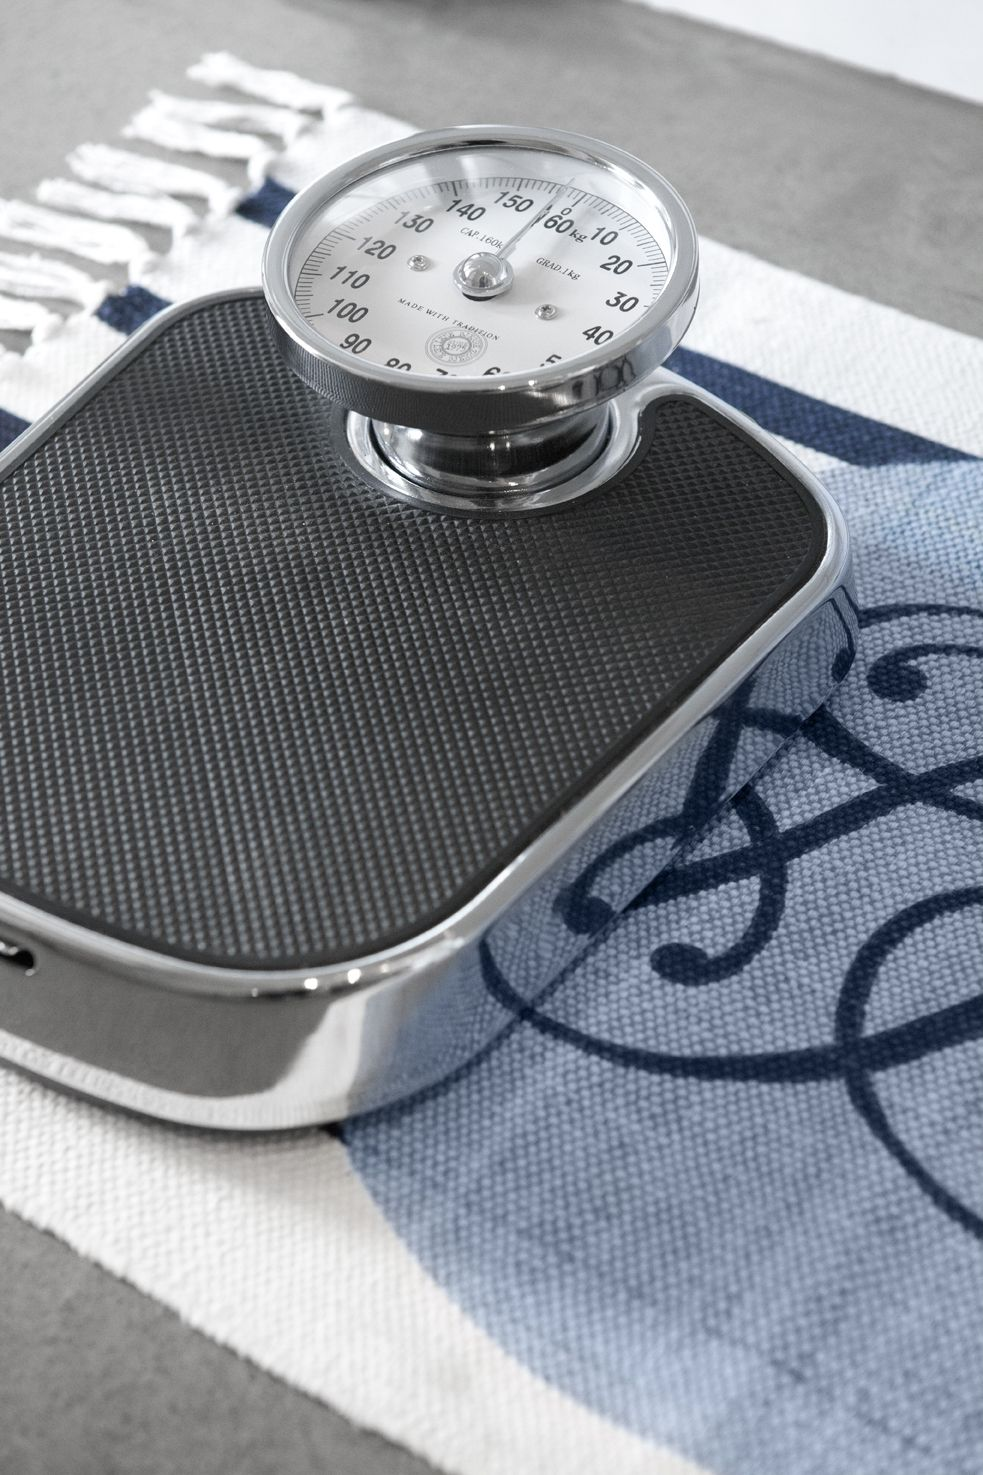 Astrid Bath Bathroom Scales And Ruc Collection Stribed Rug With Monogram Lene Bjerre Spring 2014 Recepten